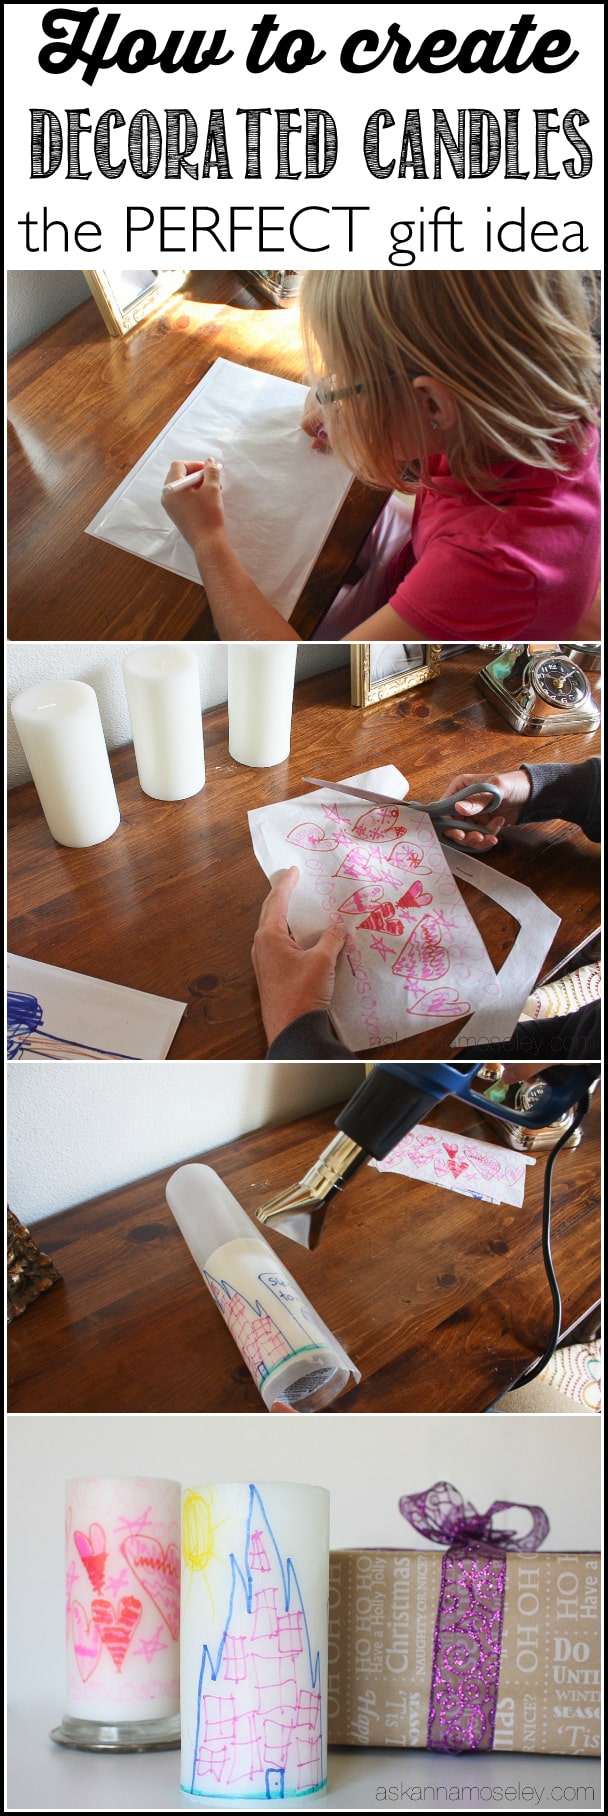 A simple tutorial showing you how to create your own decorated candles. This is a perfect gift idea for grandmas, teachers or friends!   Ask Anna